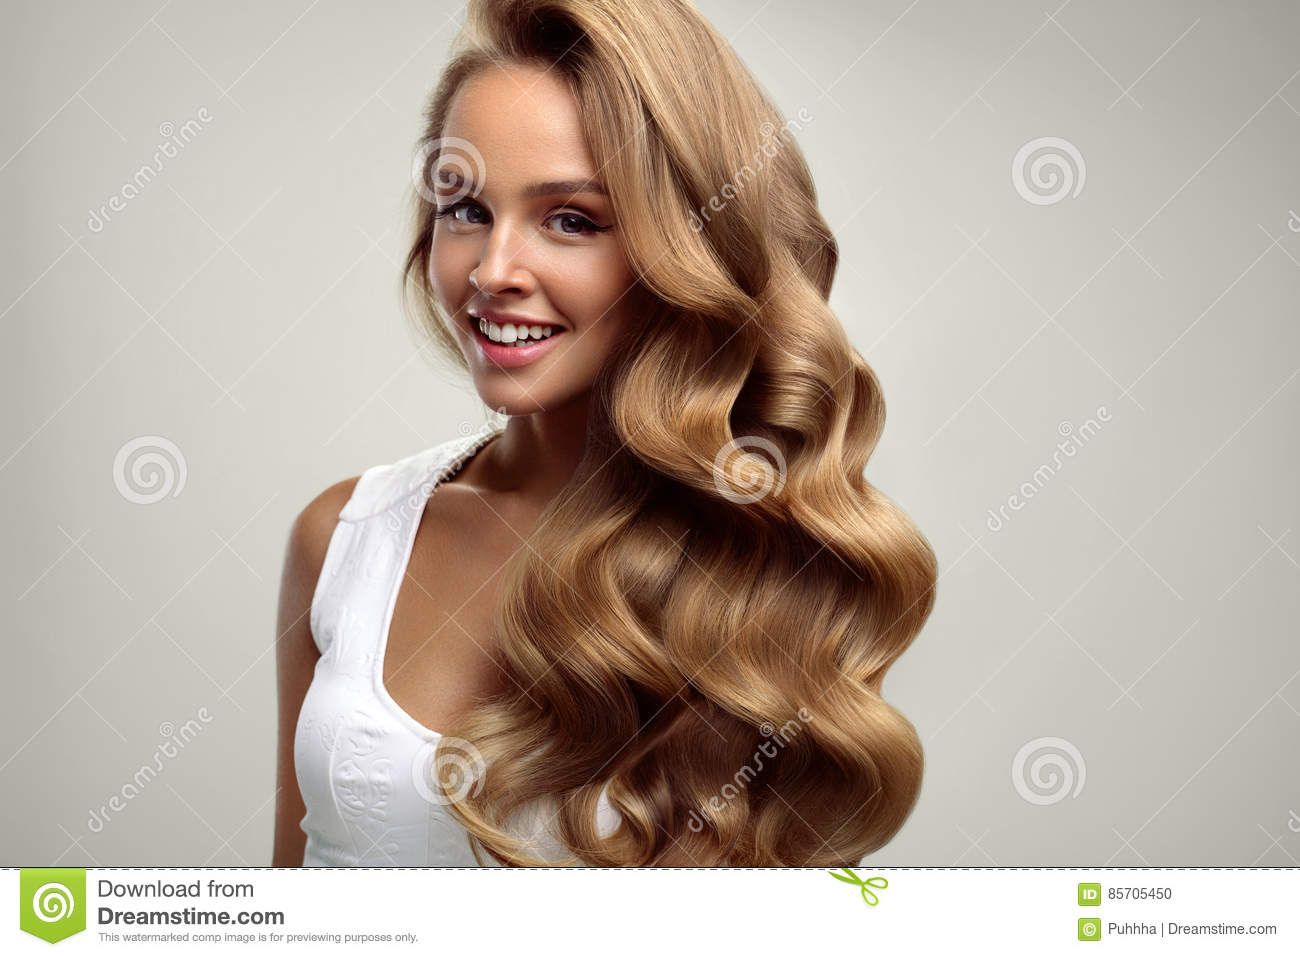 Coiffure Volumineuse Beauty Beautiful Woman With Long Blonde Curly Hair